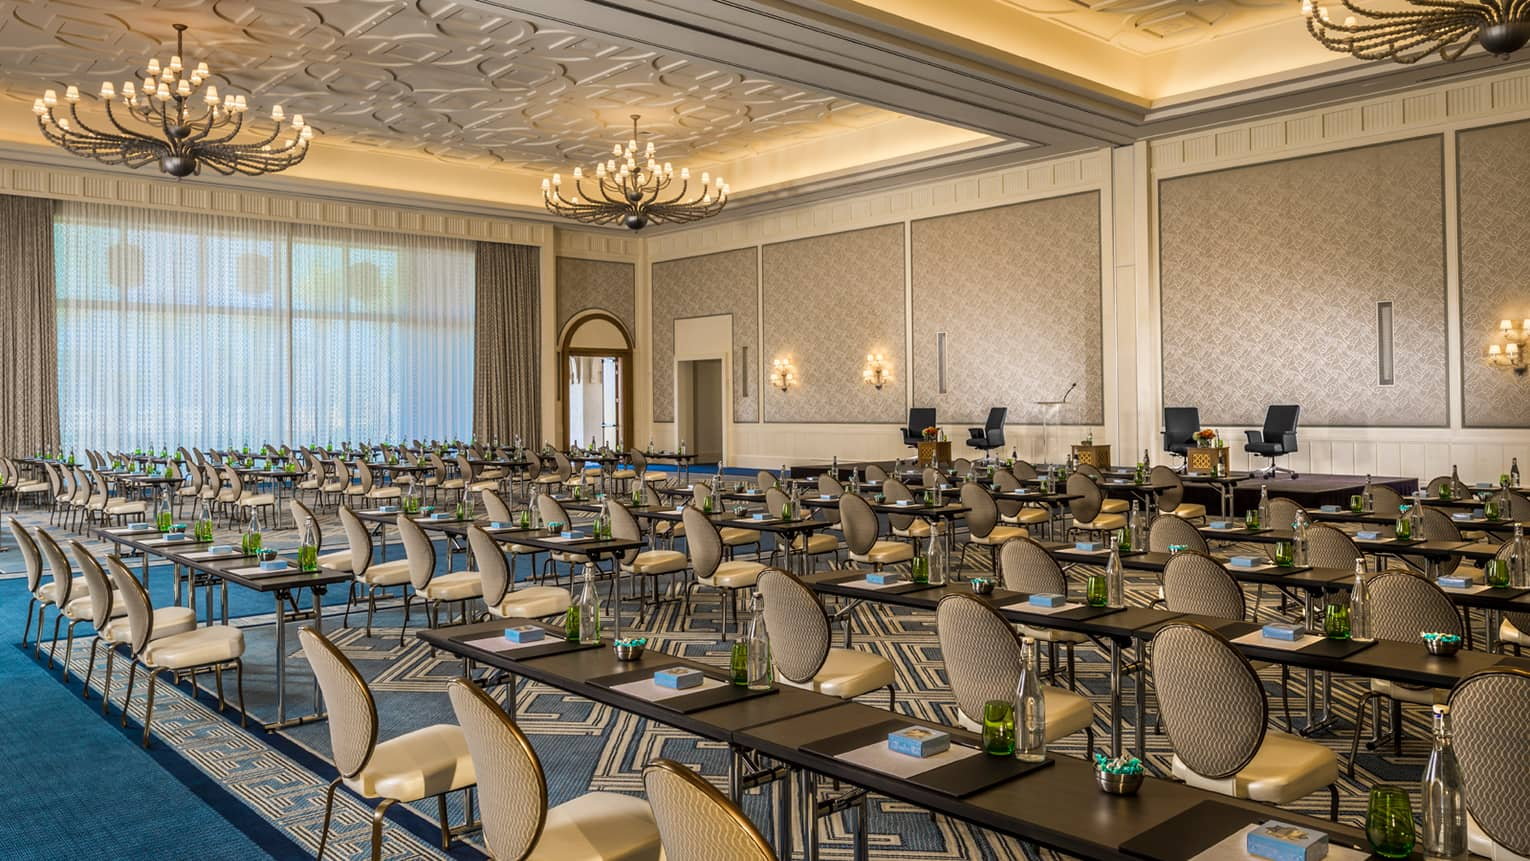 Rows of chairs, meeting tables in large Dana ballroom event space with high ceilings, chandeliers